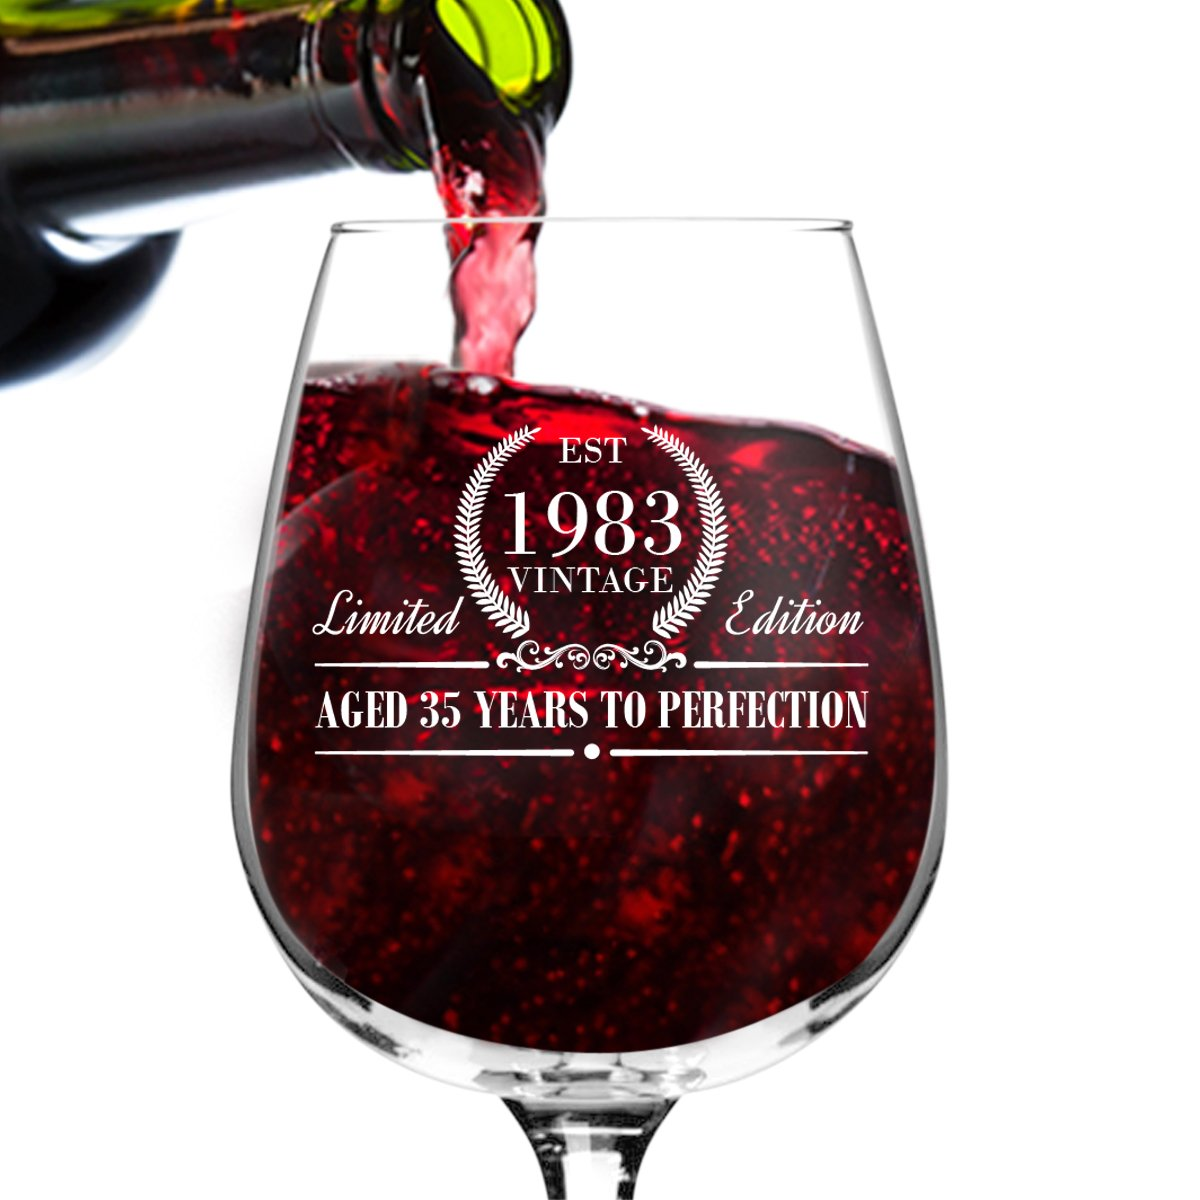 1983 Vintage Edition Birthday Wine Glass for Men and Women (35th Anniversary) 12 oz, Elegant Happy Birthday Wine Glasses for Red or White Wine | Classic Birthday Gift, Reunion Gift for Him or Her